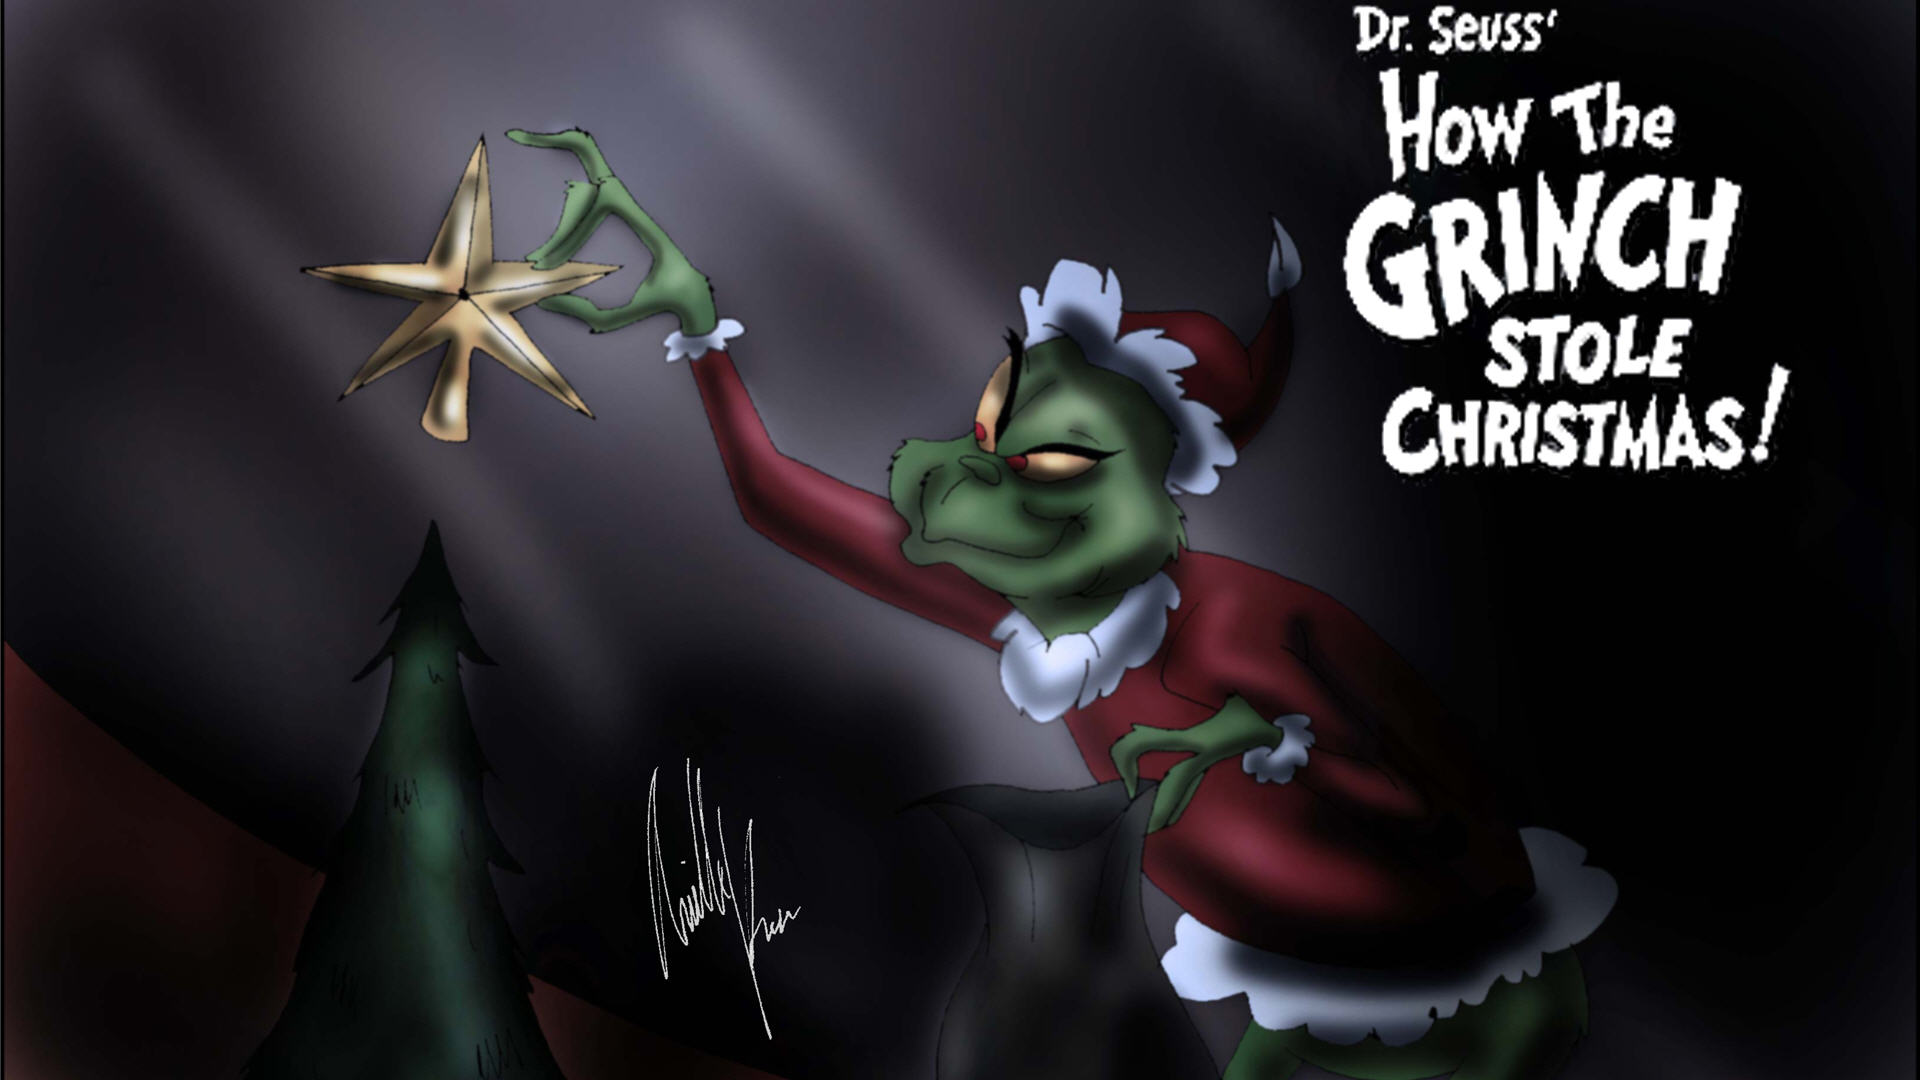 How-The-Grinch-Stole-Christmas-1920x1080-wallpaper-wp3806659